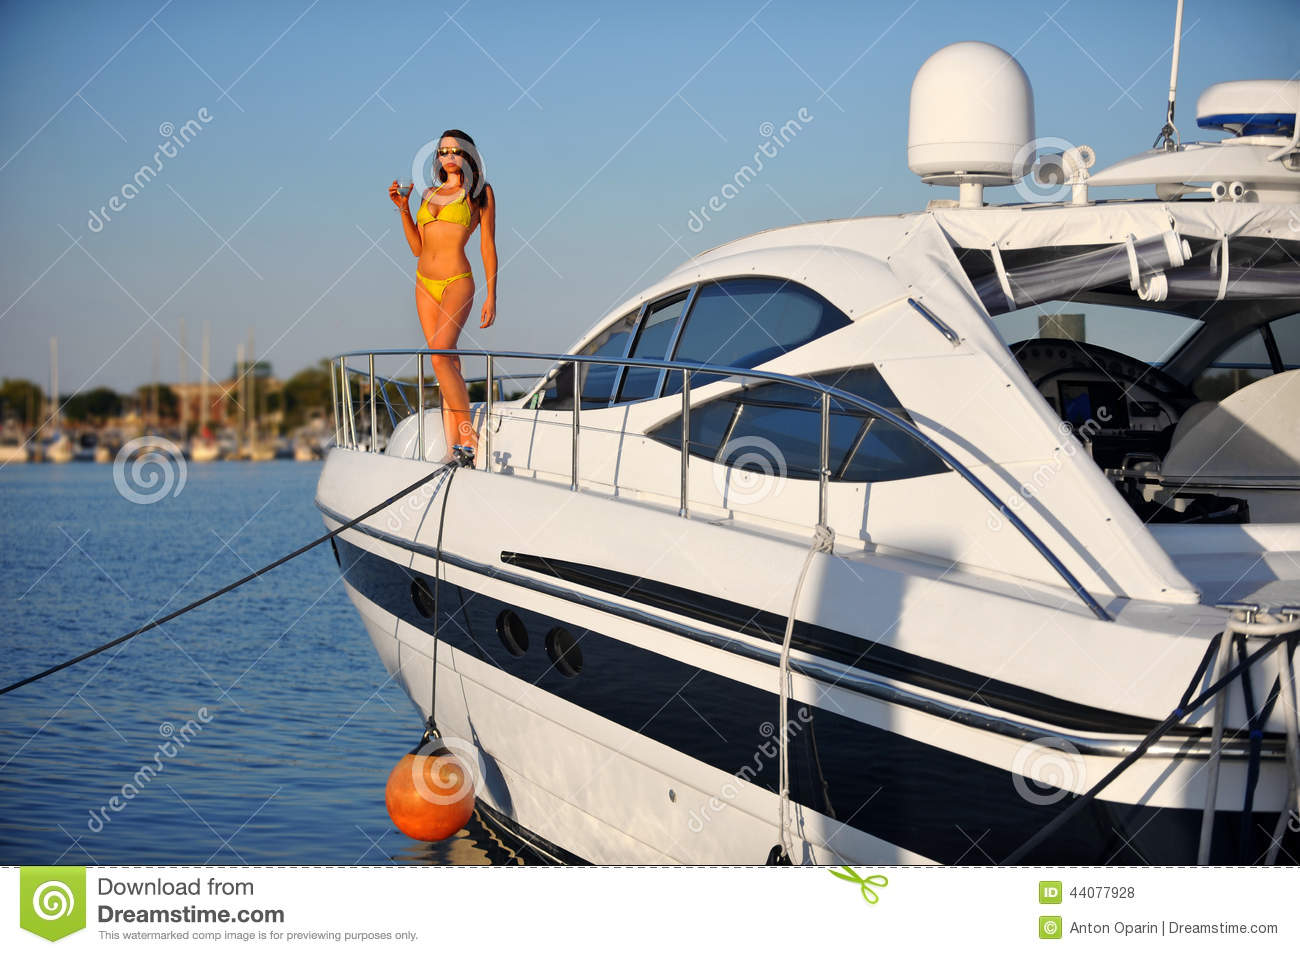 Woman in stylish bikini standing on the deck of motorboat.